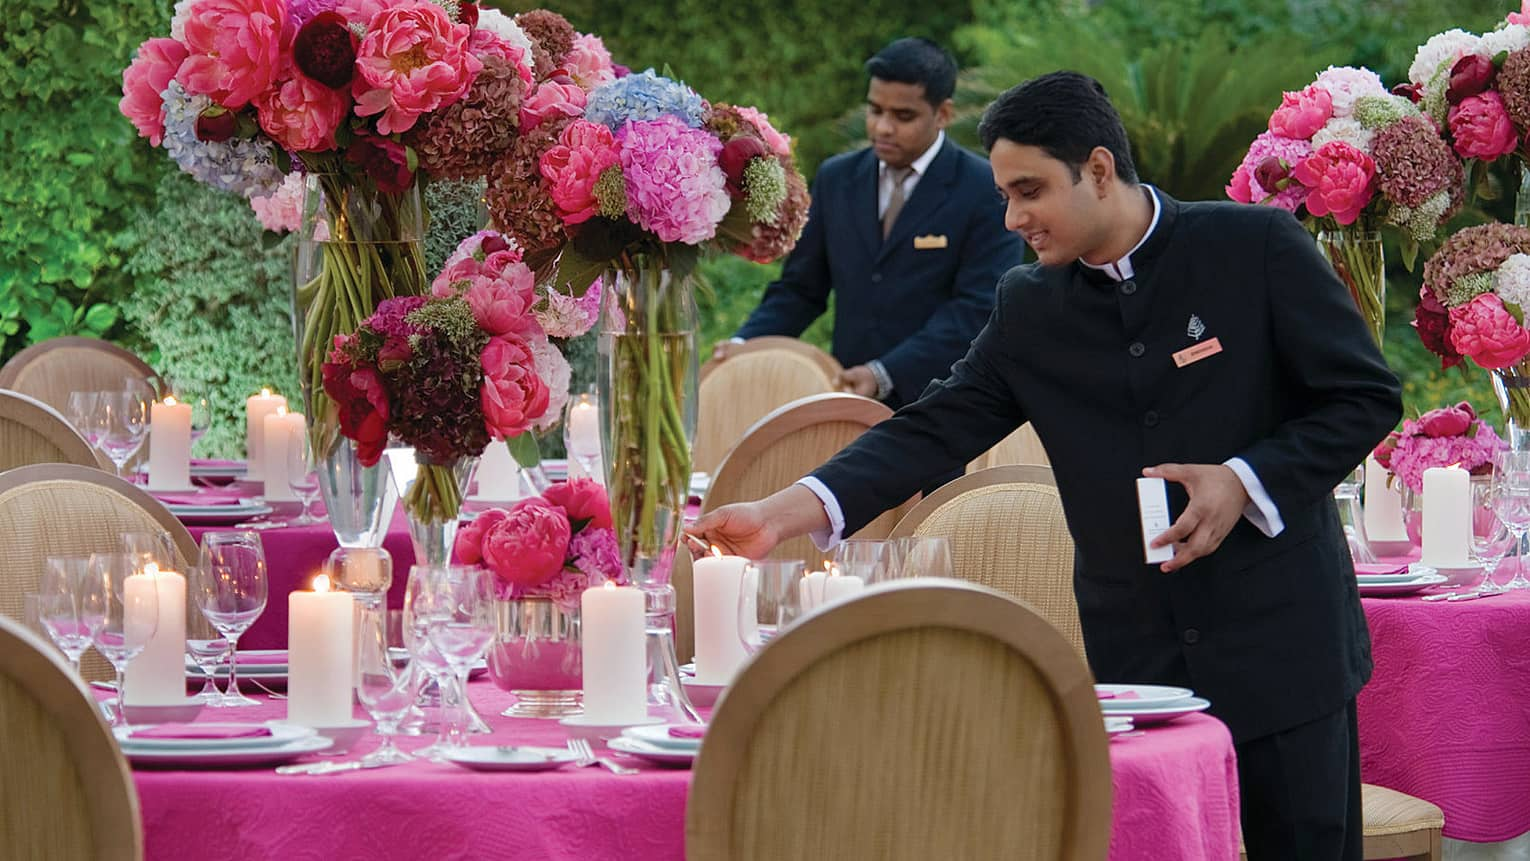 Two male staff set table with pink tablecloth, large vases of flowers and candles